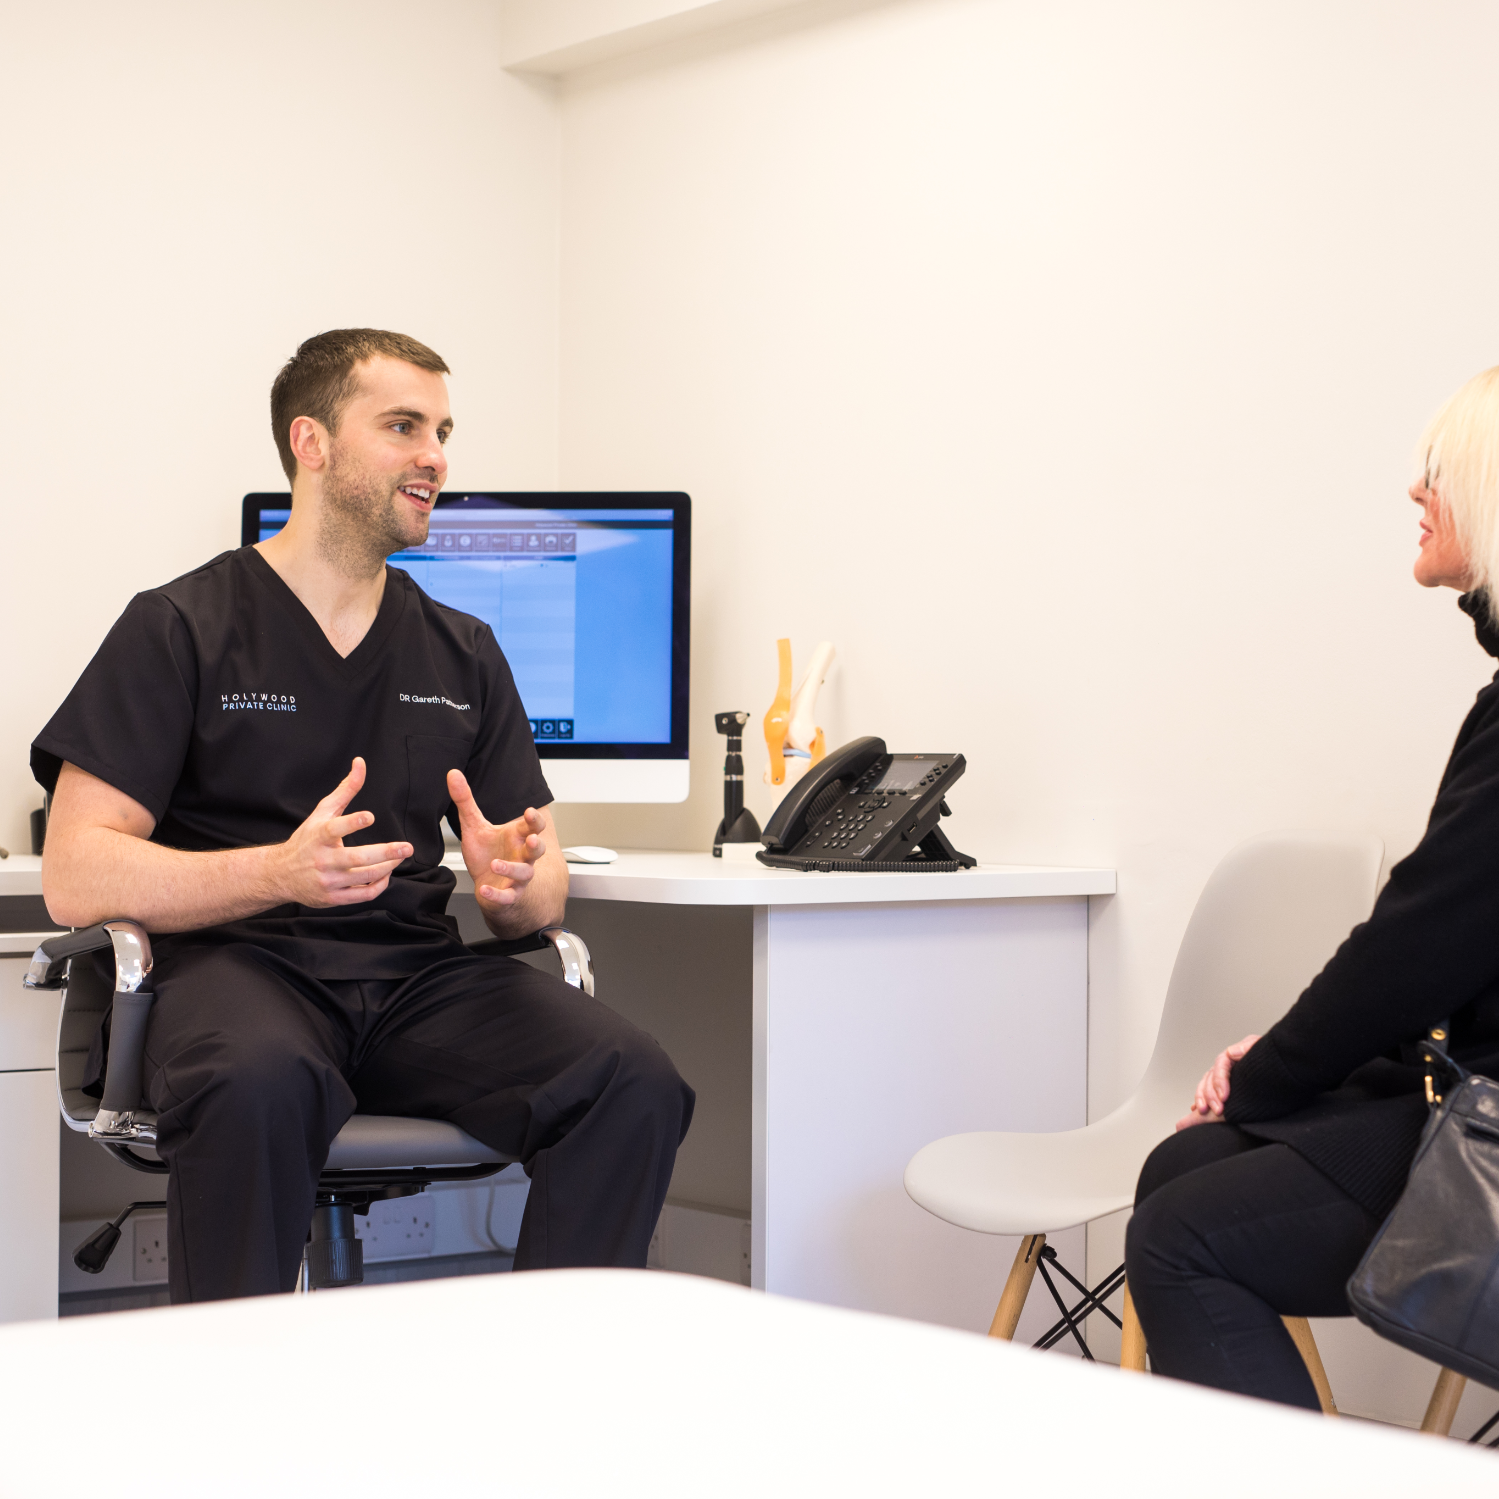 GP in a clinic talking to a patient